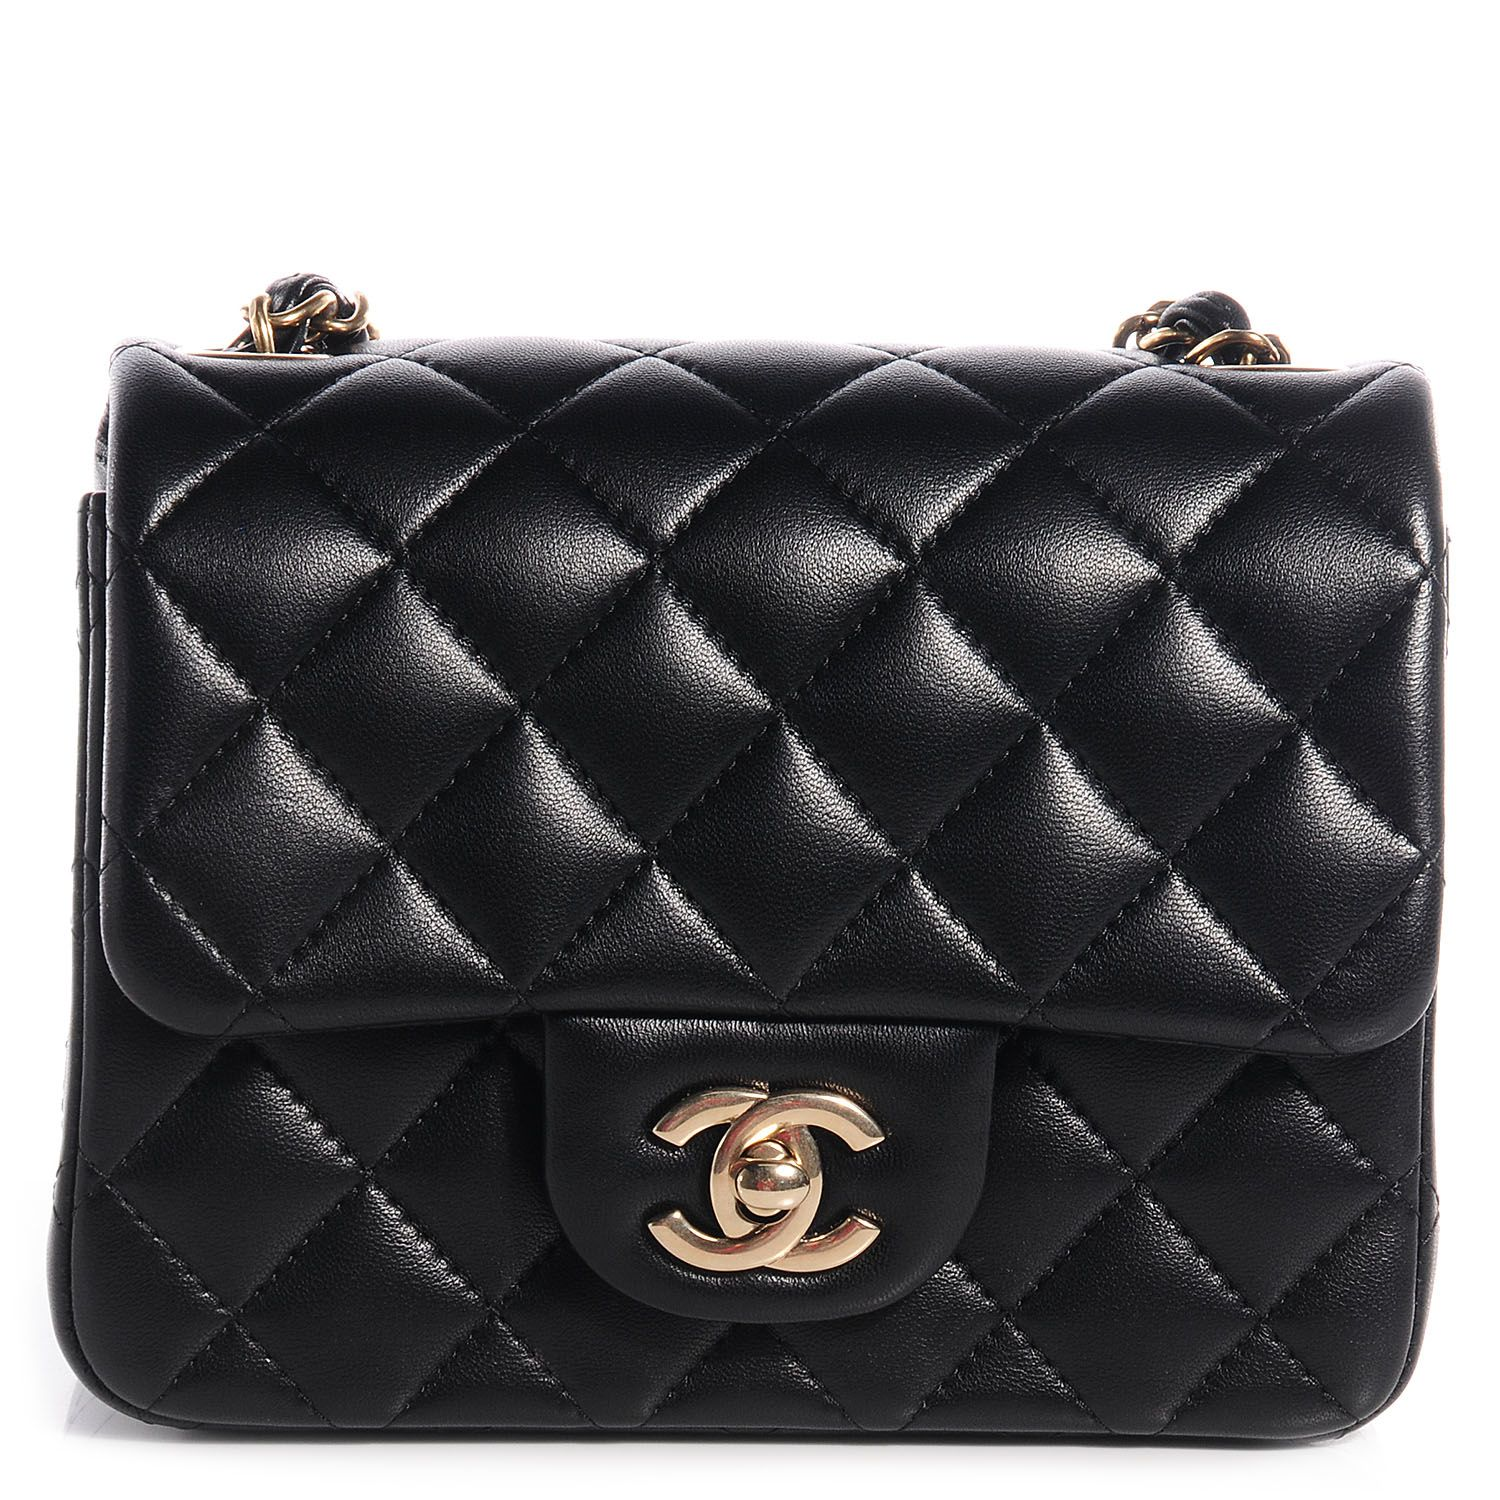 Chanel Lambskin Quilted Mini Square Flap Black Chanel Mini Square Chanel Mini Flap Bag Chanel Mini Flap